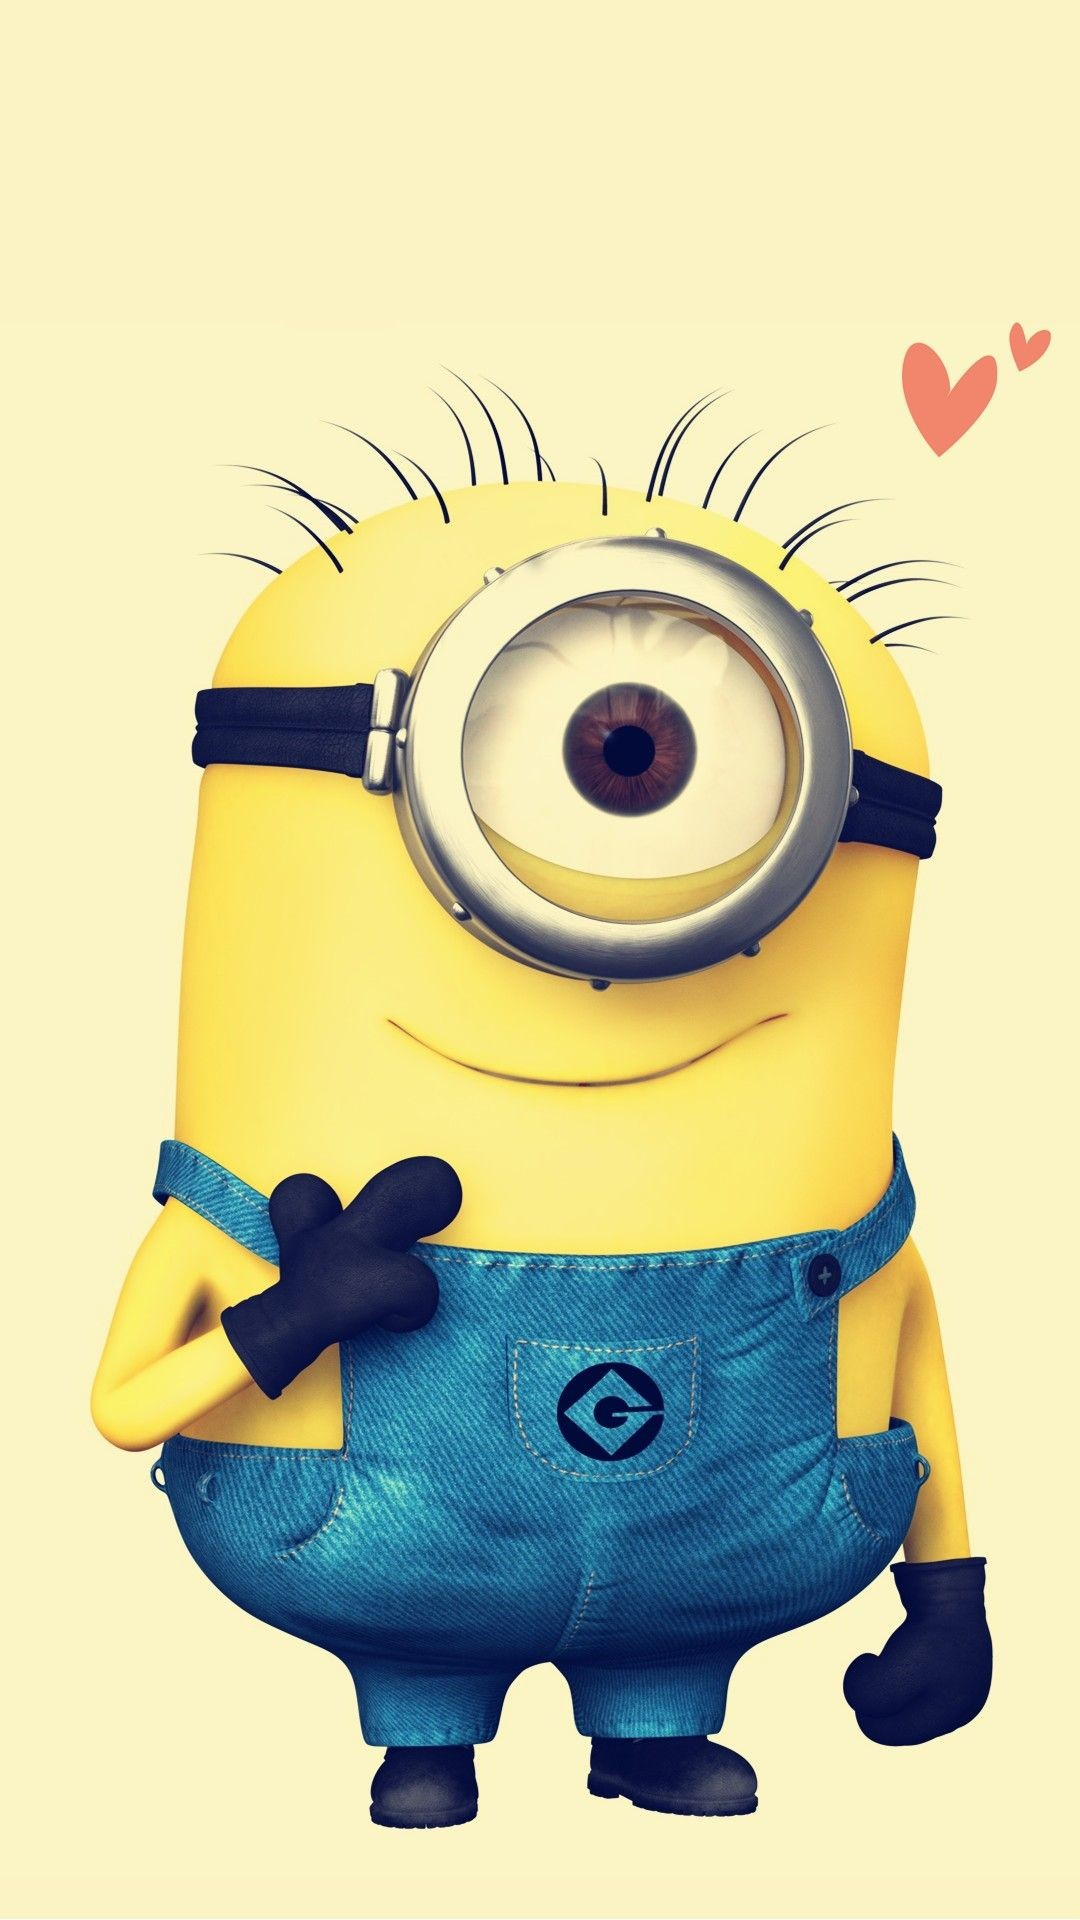 1080x1920, 2014 Halloween Despicable Me Minion Apple - Minion Giving Middle Finger - HD Wallpaper